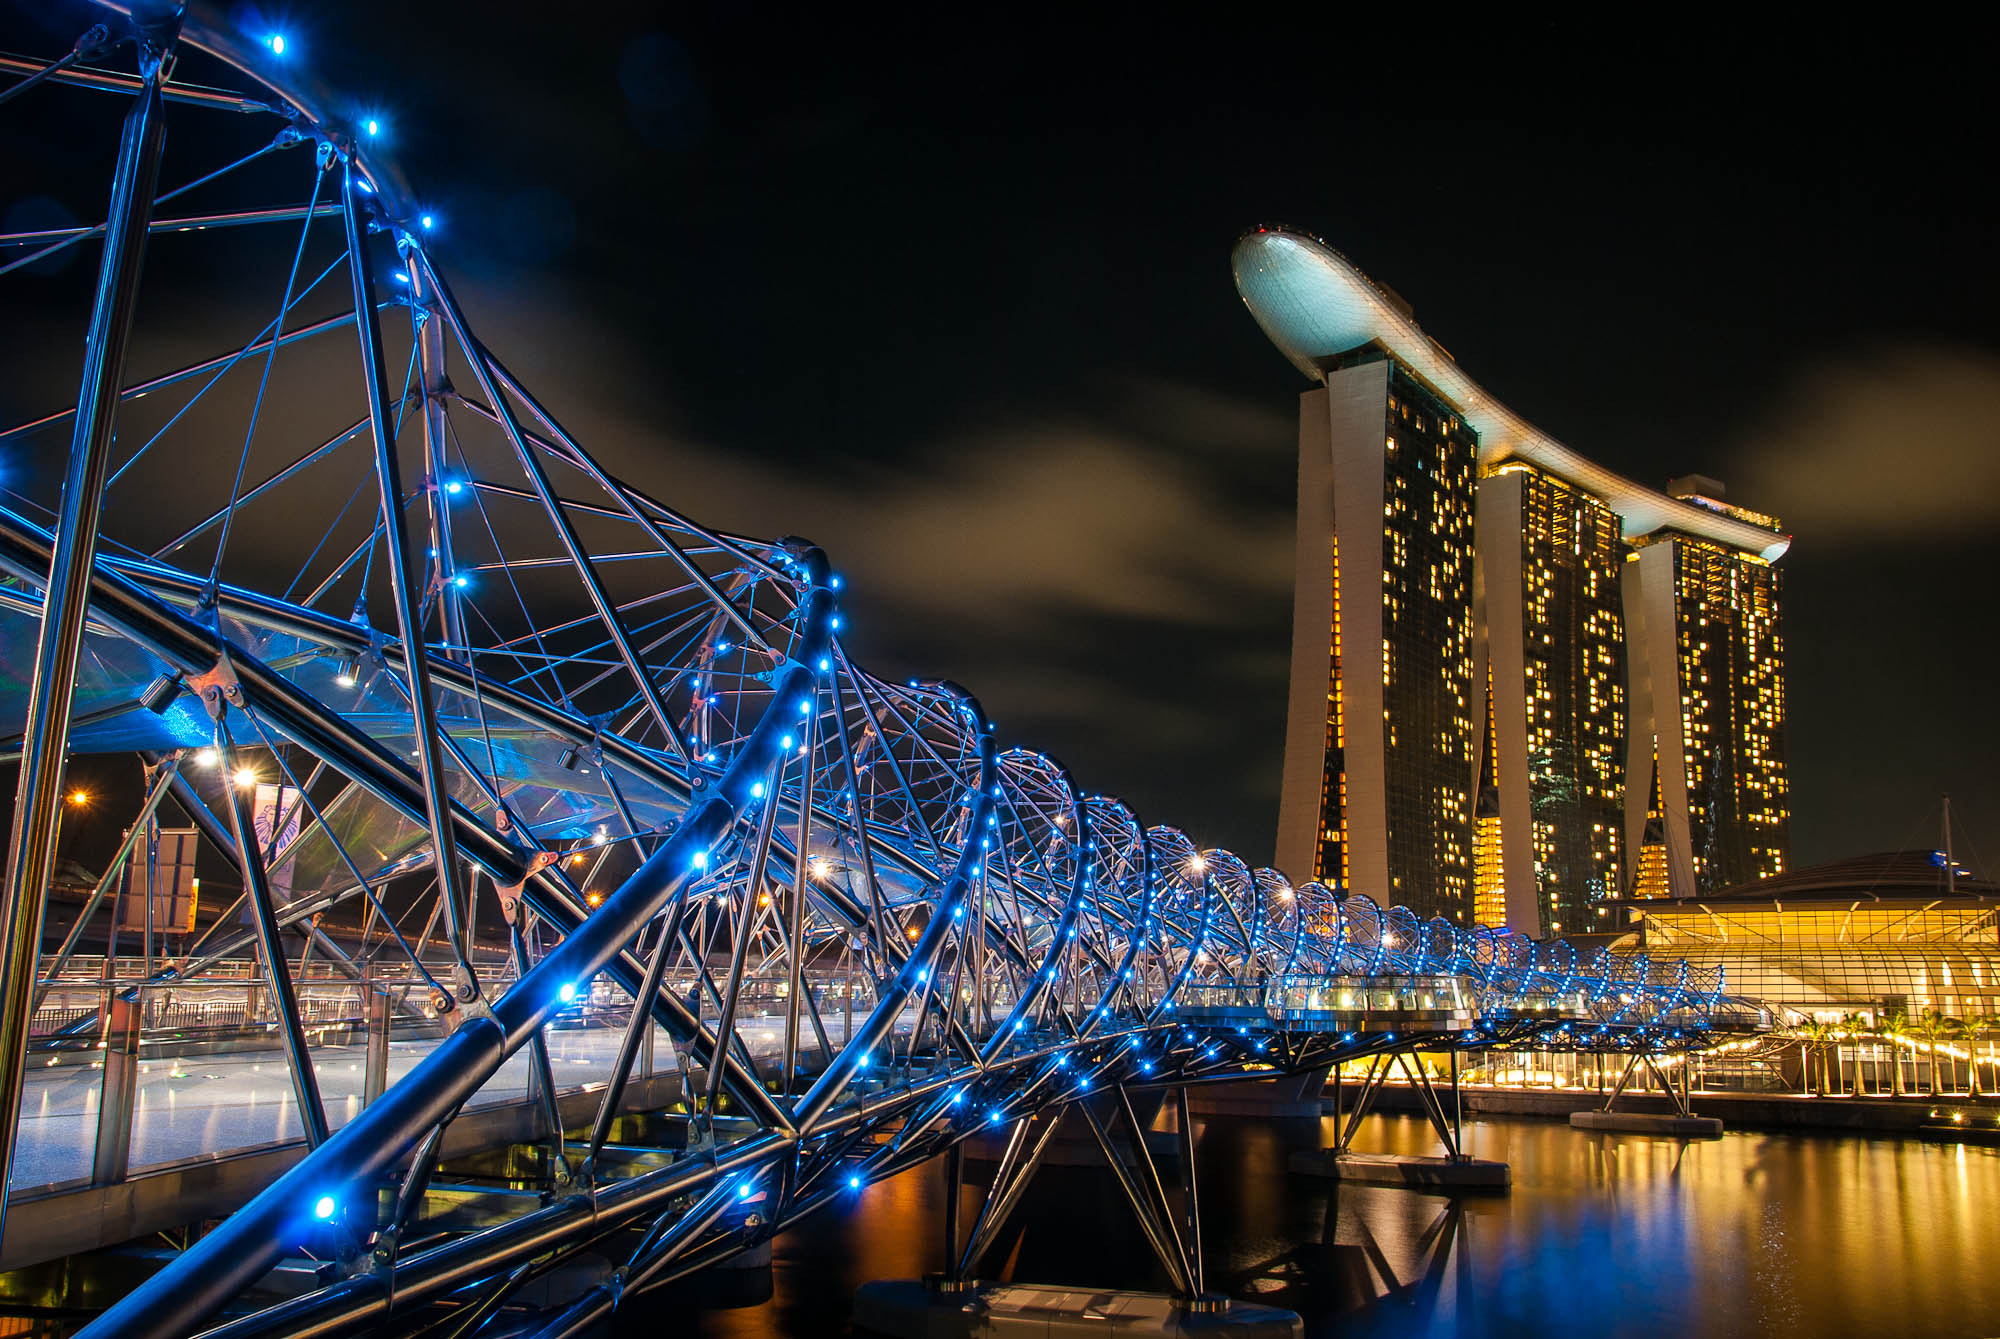 Photograph The Helix by Jupert Sison on 500px